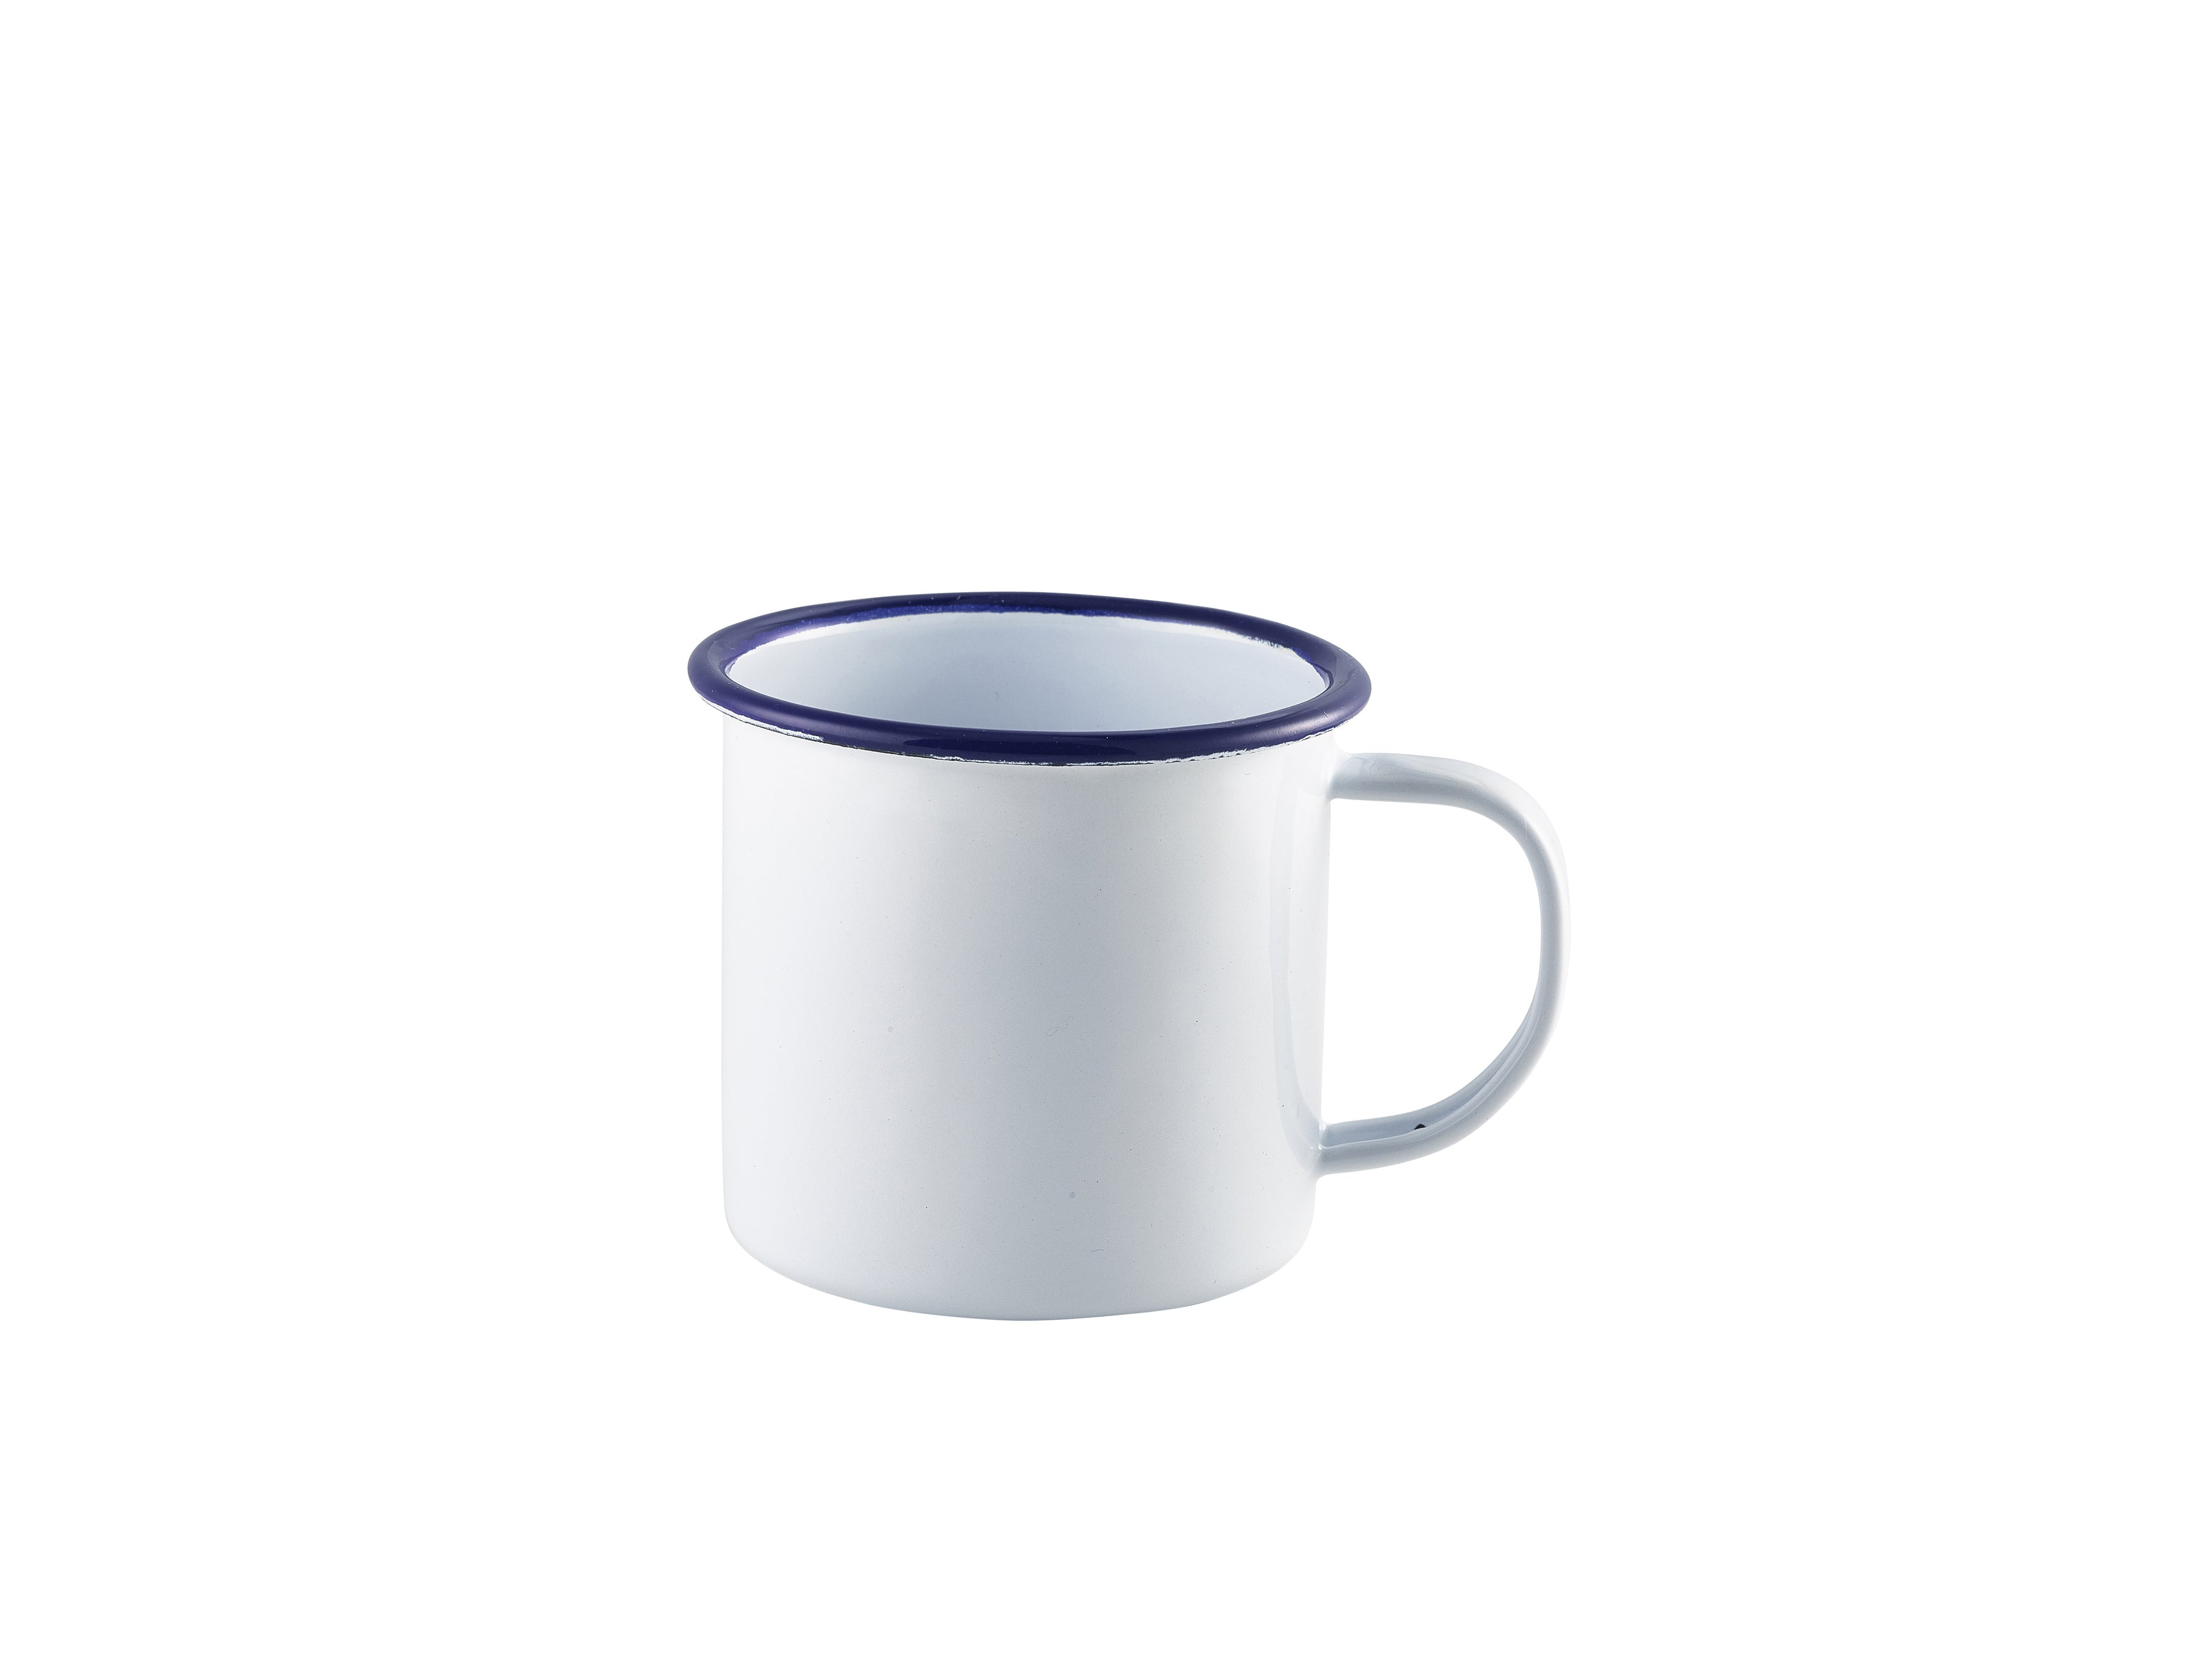 Enamel Mug White with Blue Rim 36cl/12.5oz